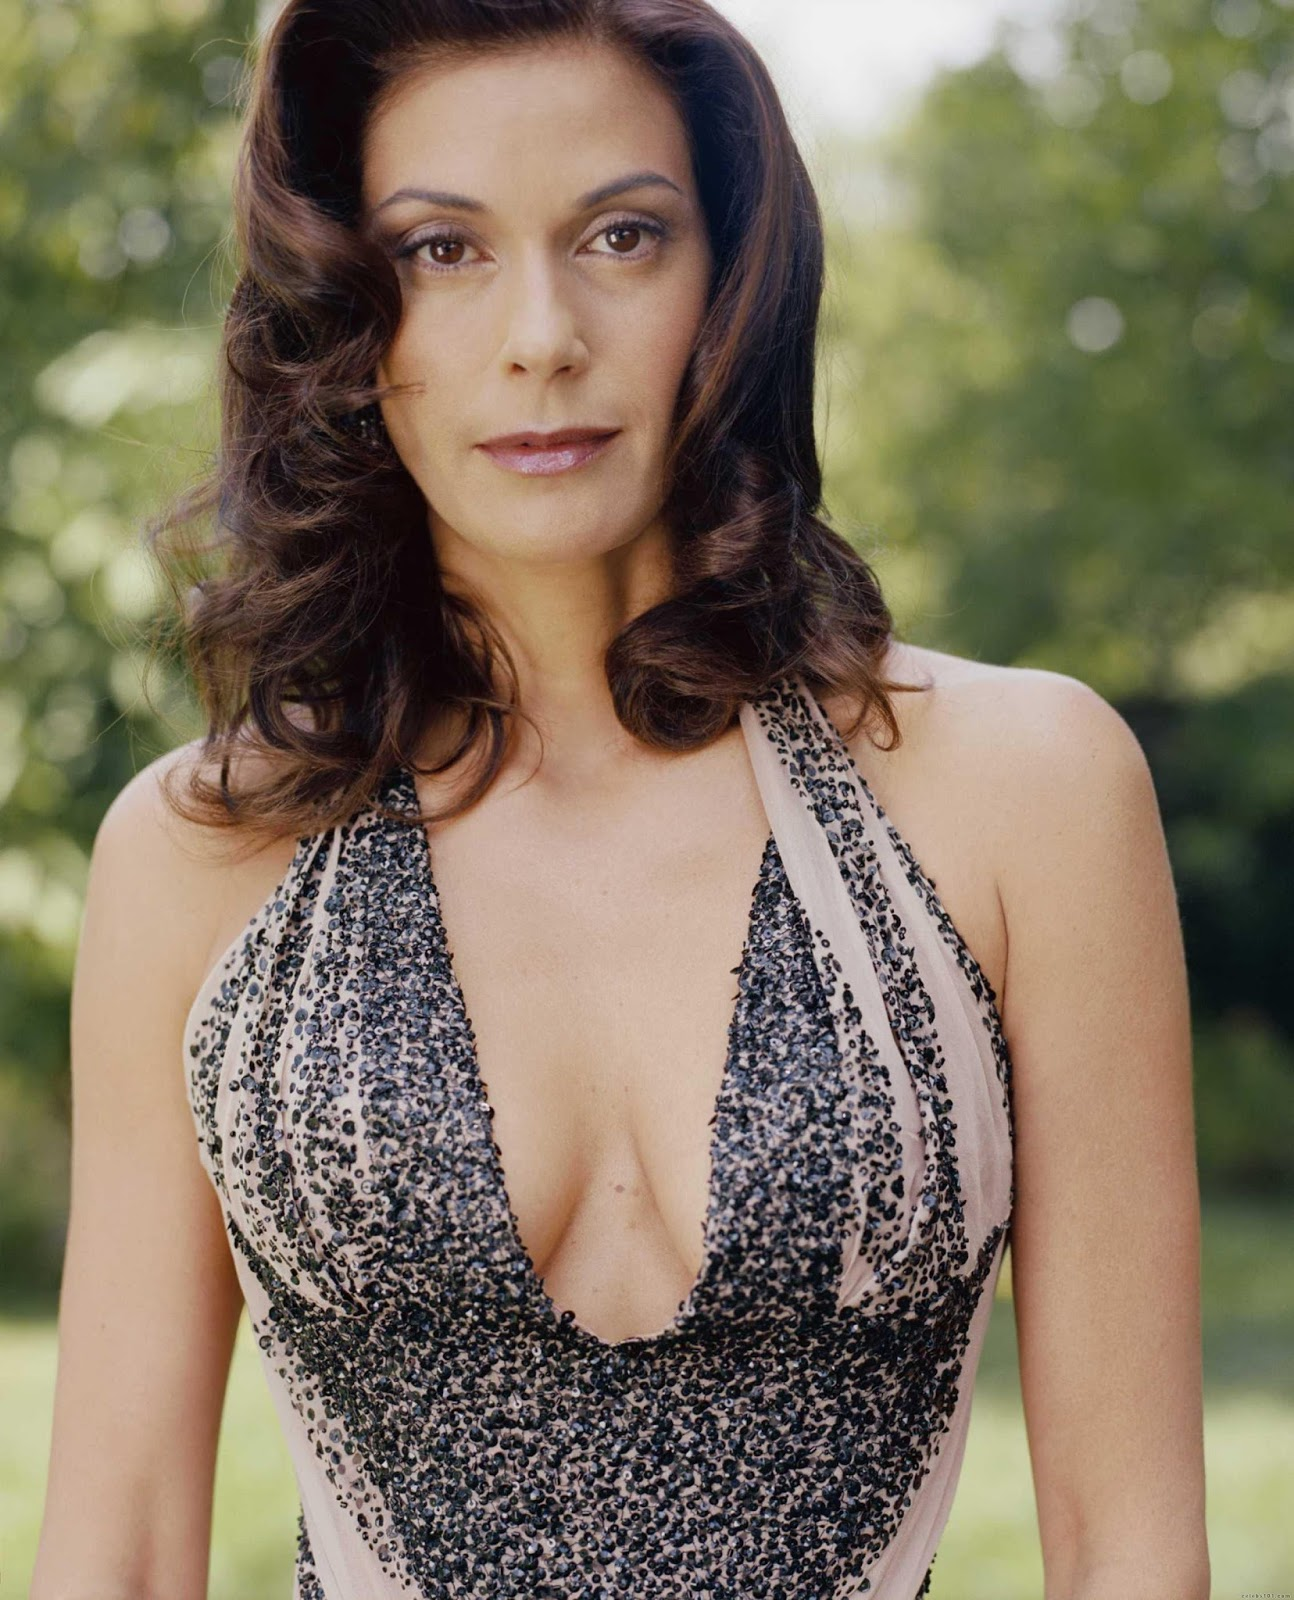 Teri Hatcher born December 8, 1964 (age 53) Teri Hatcher born December 8, 1964 (age 53) new pics